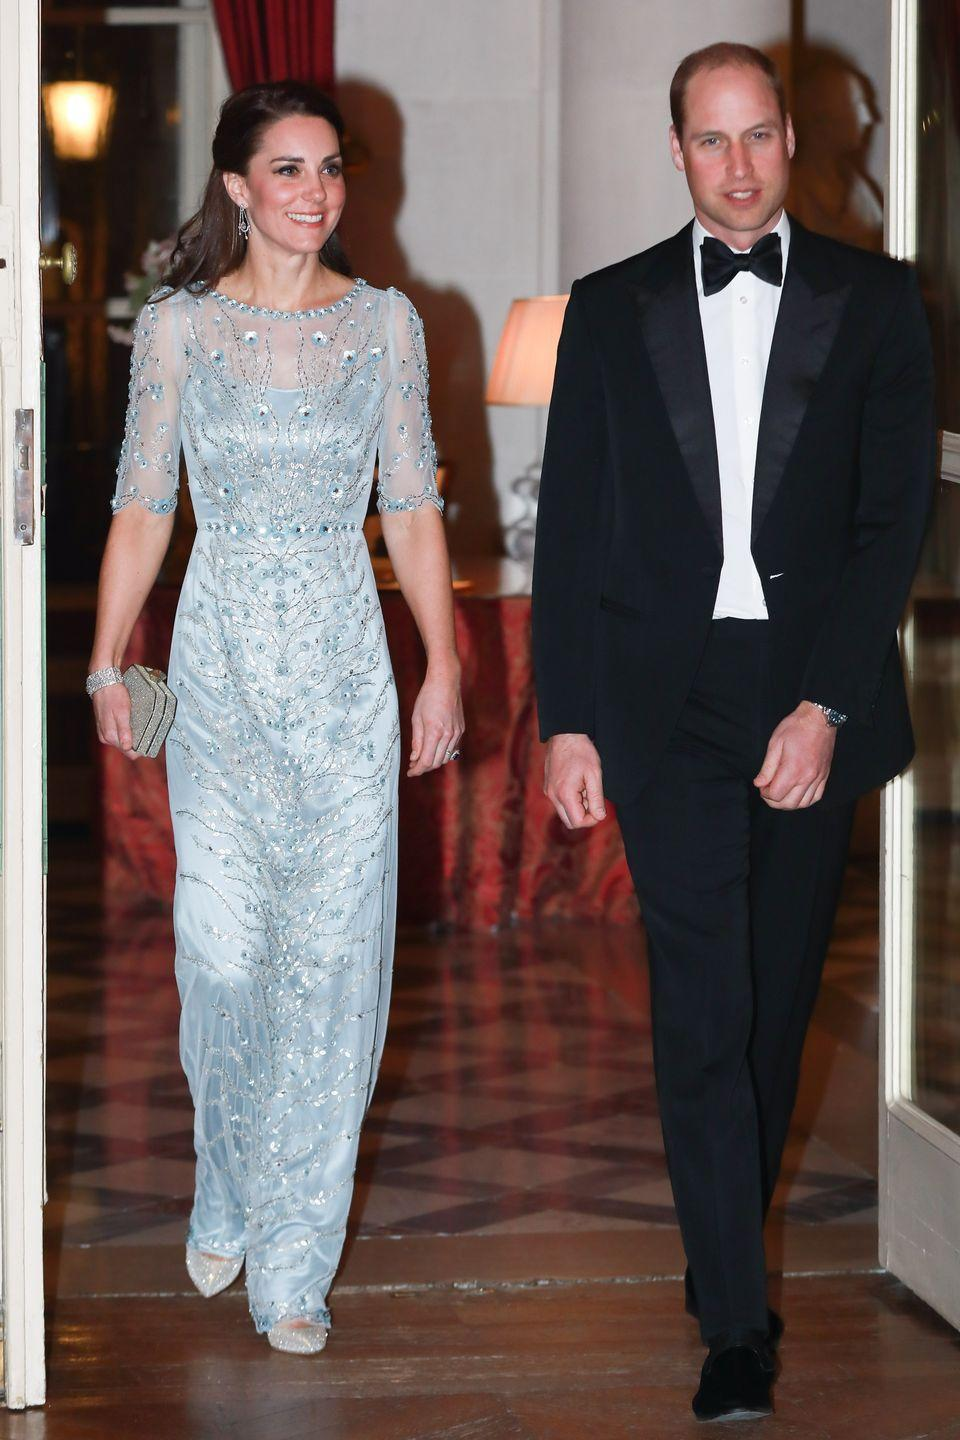 <p>Middleton (who goes by Kate) and Prince William met while attending Scotland's University of St. Andrews in 2001. The story goes that the two were friends at first, until he saw her in a *very* sheer dress at a charity fashion show.. Their relationship spanned almost a decade before they became engaged in 2010 and tied the knot the following year. </p>